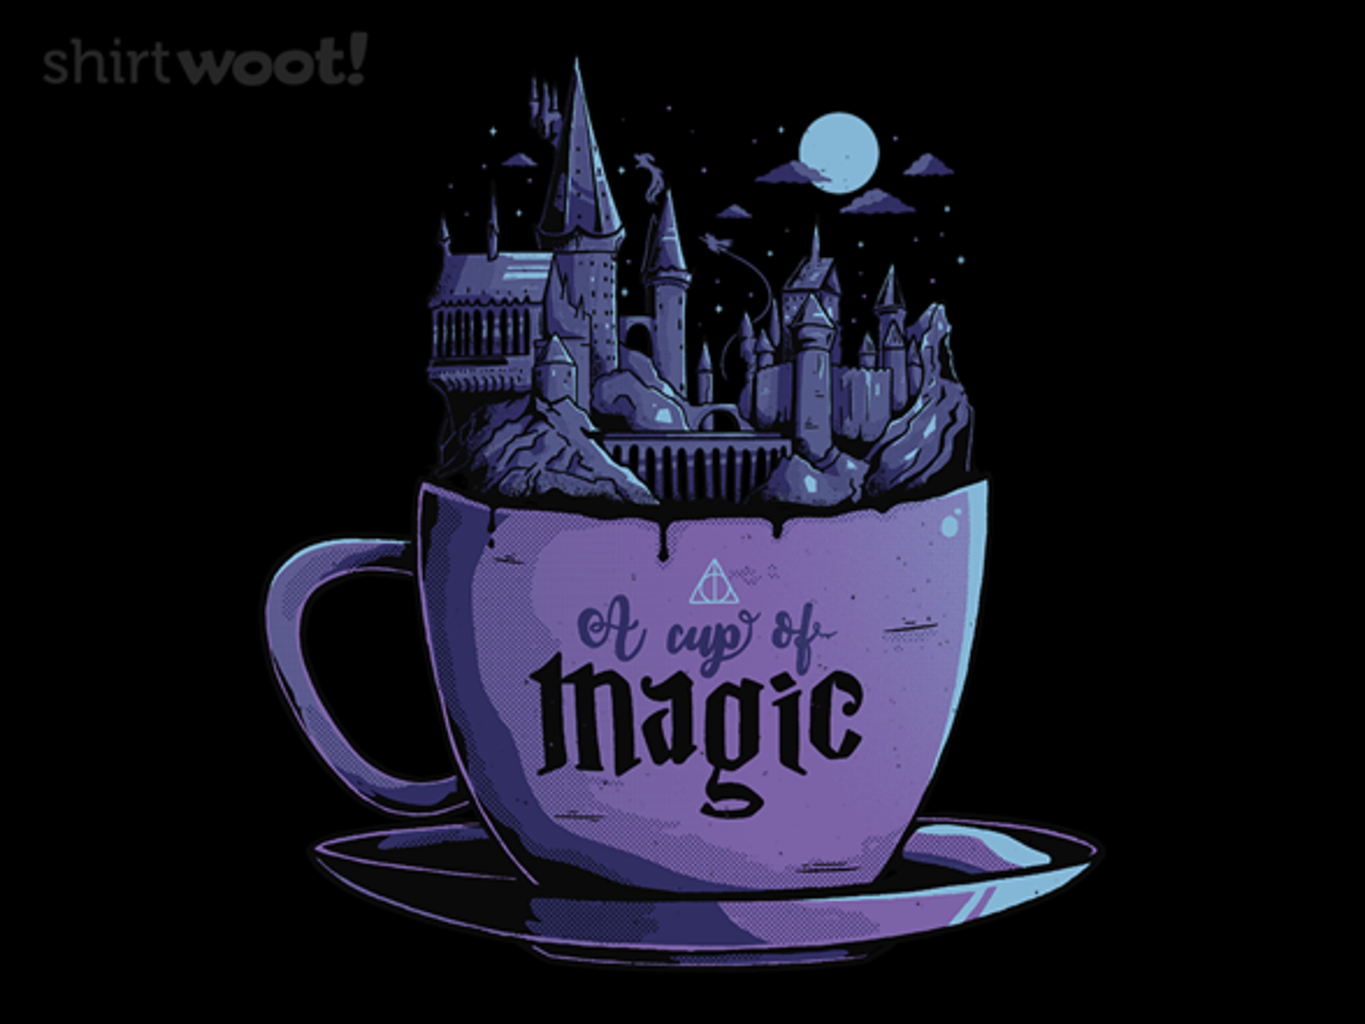 Woot!: A Cup of Magic